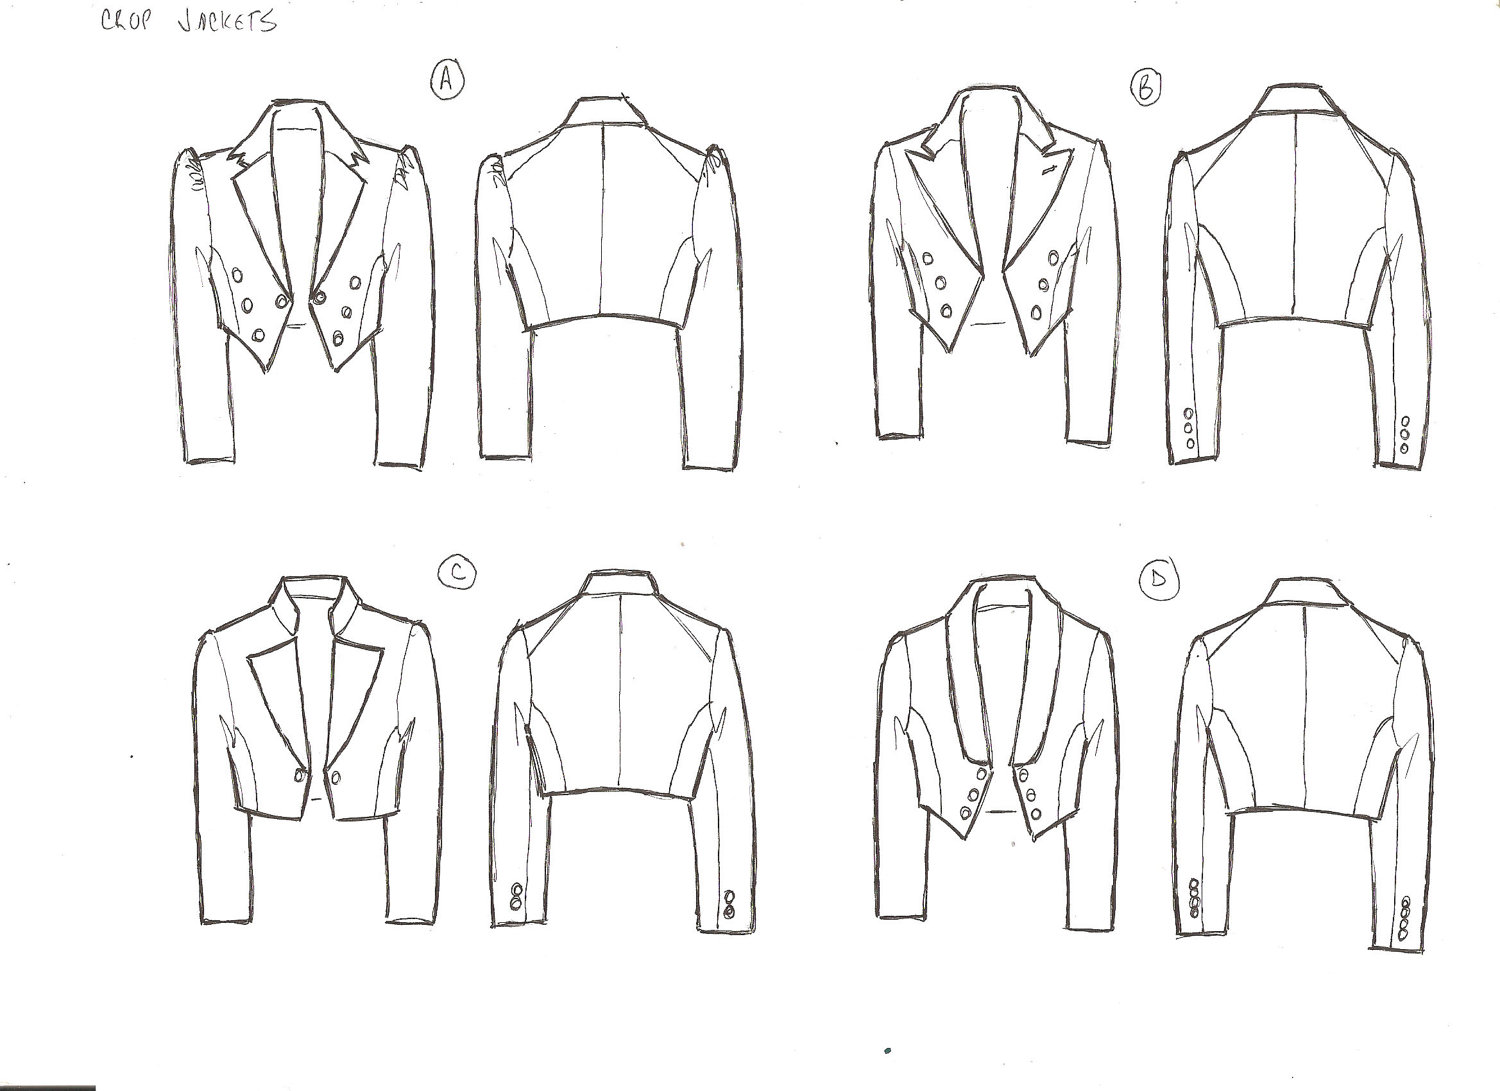 Women's Tailcoats and Tuxes—For Lesbian Weddings and